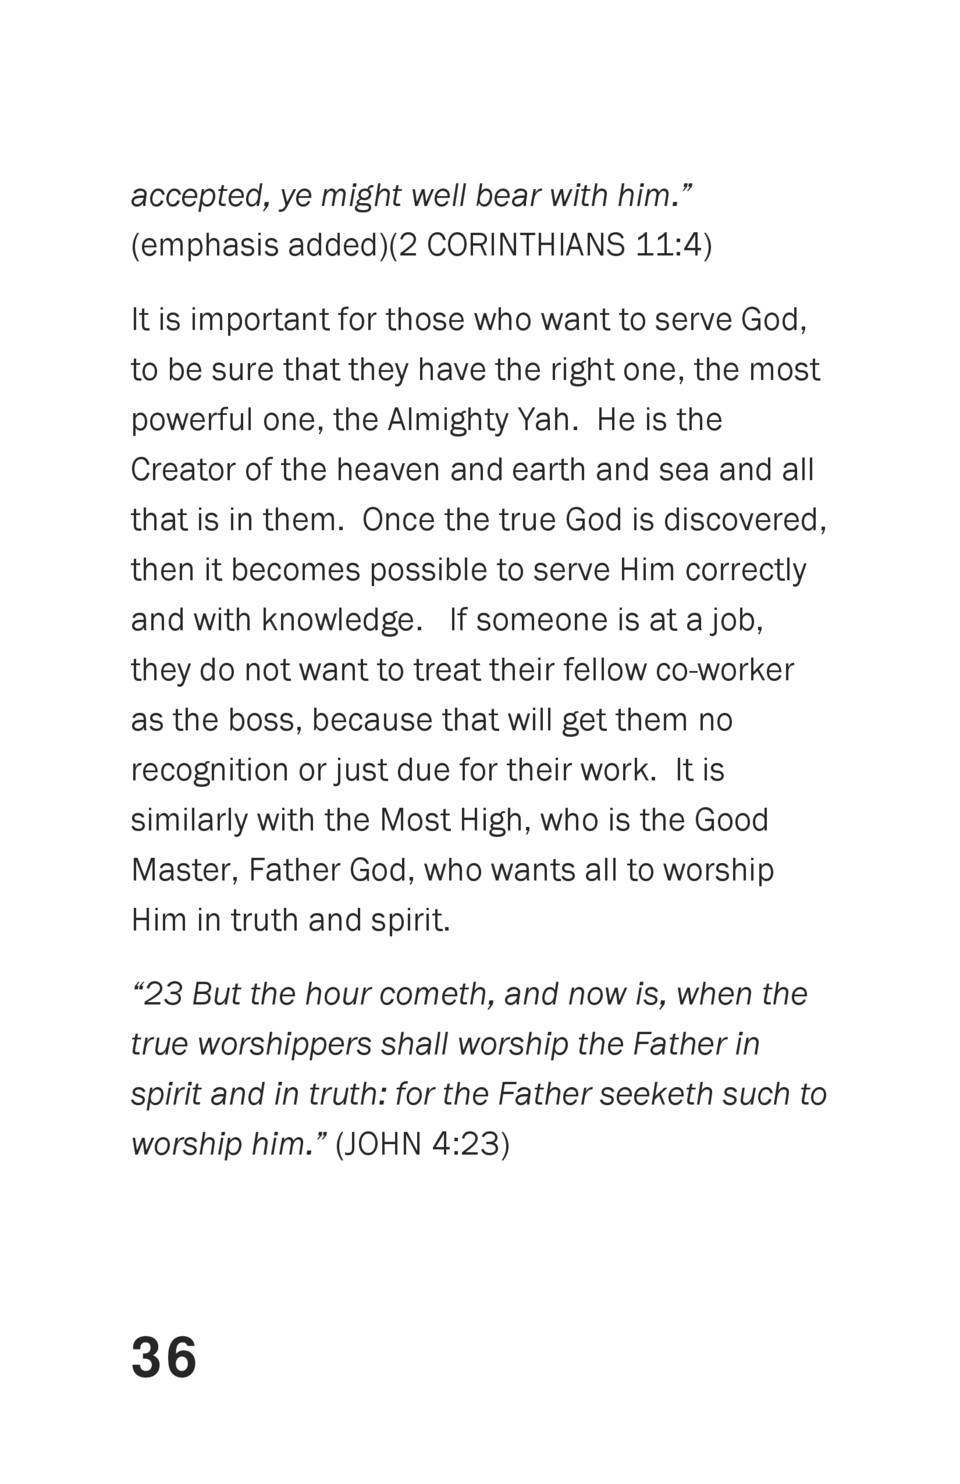 accepted, ye might well bear with him.     emphasis added  2 CORINTHIANS 11 4  It is important for those who want to serve...